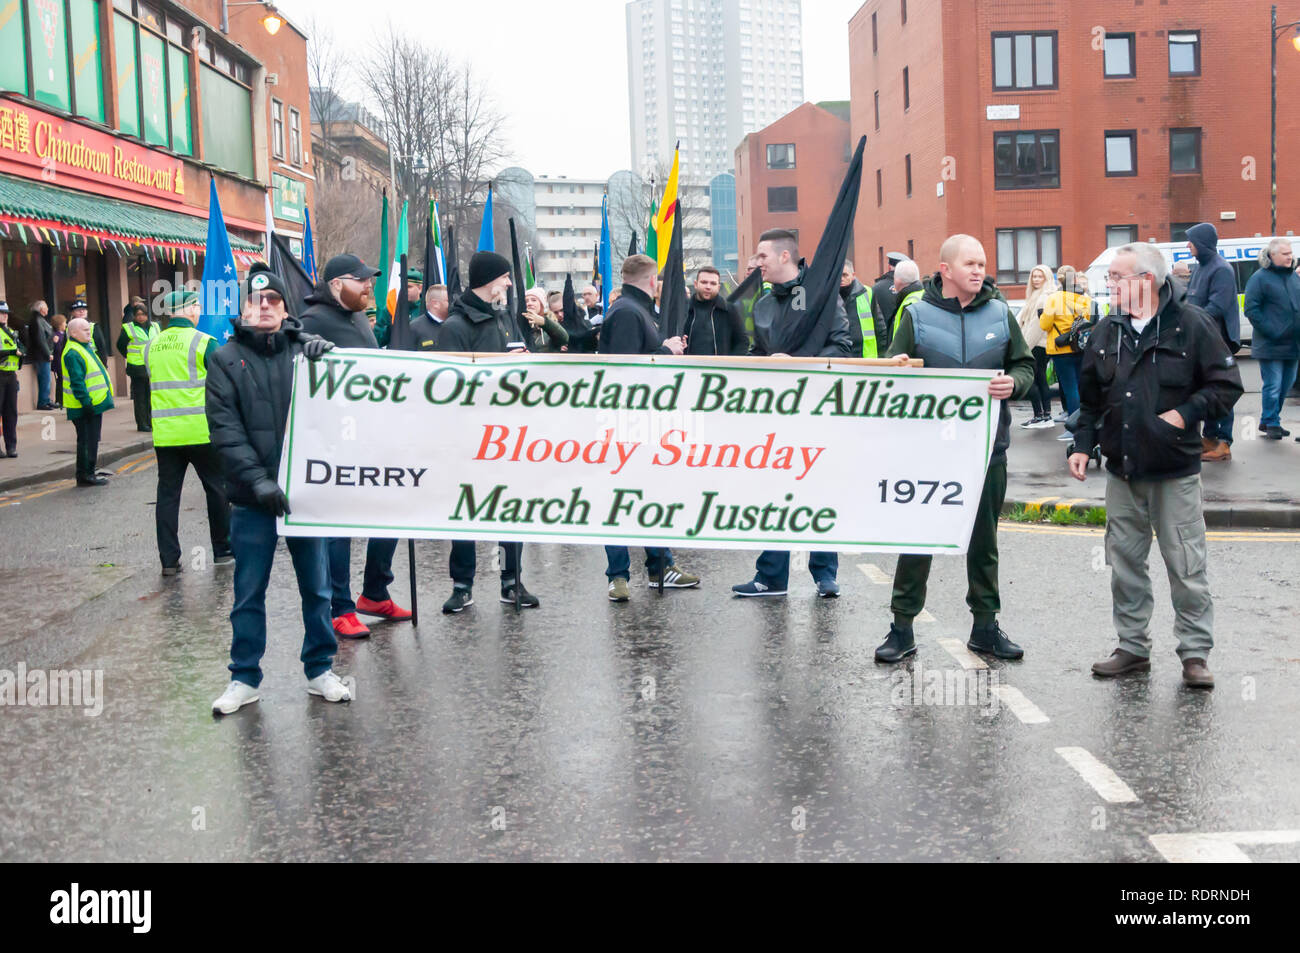 Glasgow, Scotland, UK. 19th January, 2019. Members of the West of Scotland Band Alliance march through the streets of the city carrying a banner saying Bloody Sunday, March For Justice, Derry 1972. Formed in 1979 they are the oldest republican marching organisation in Scotland and promote the establishment of a 32 county socialist Republic of Ireland. Today's march is entitled Bloody Sunday, March For Justice. Credit: Skully/Alamy Live News - Stock Image